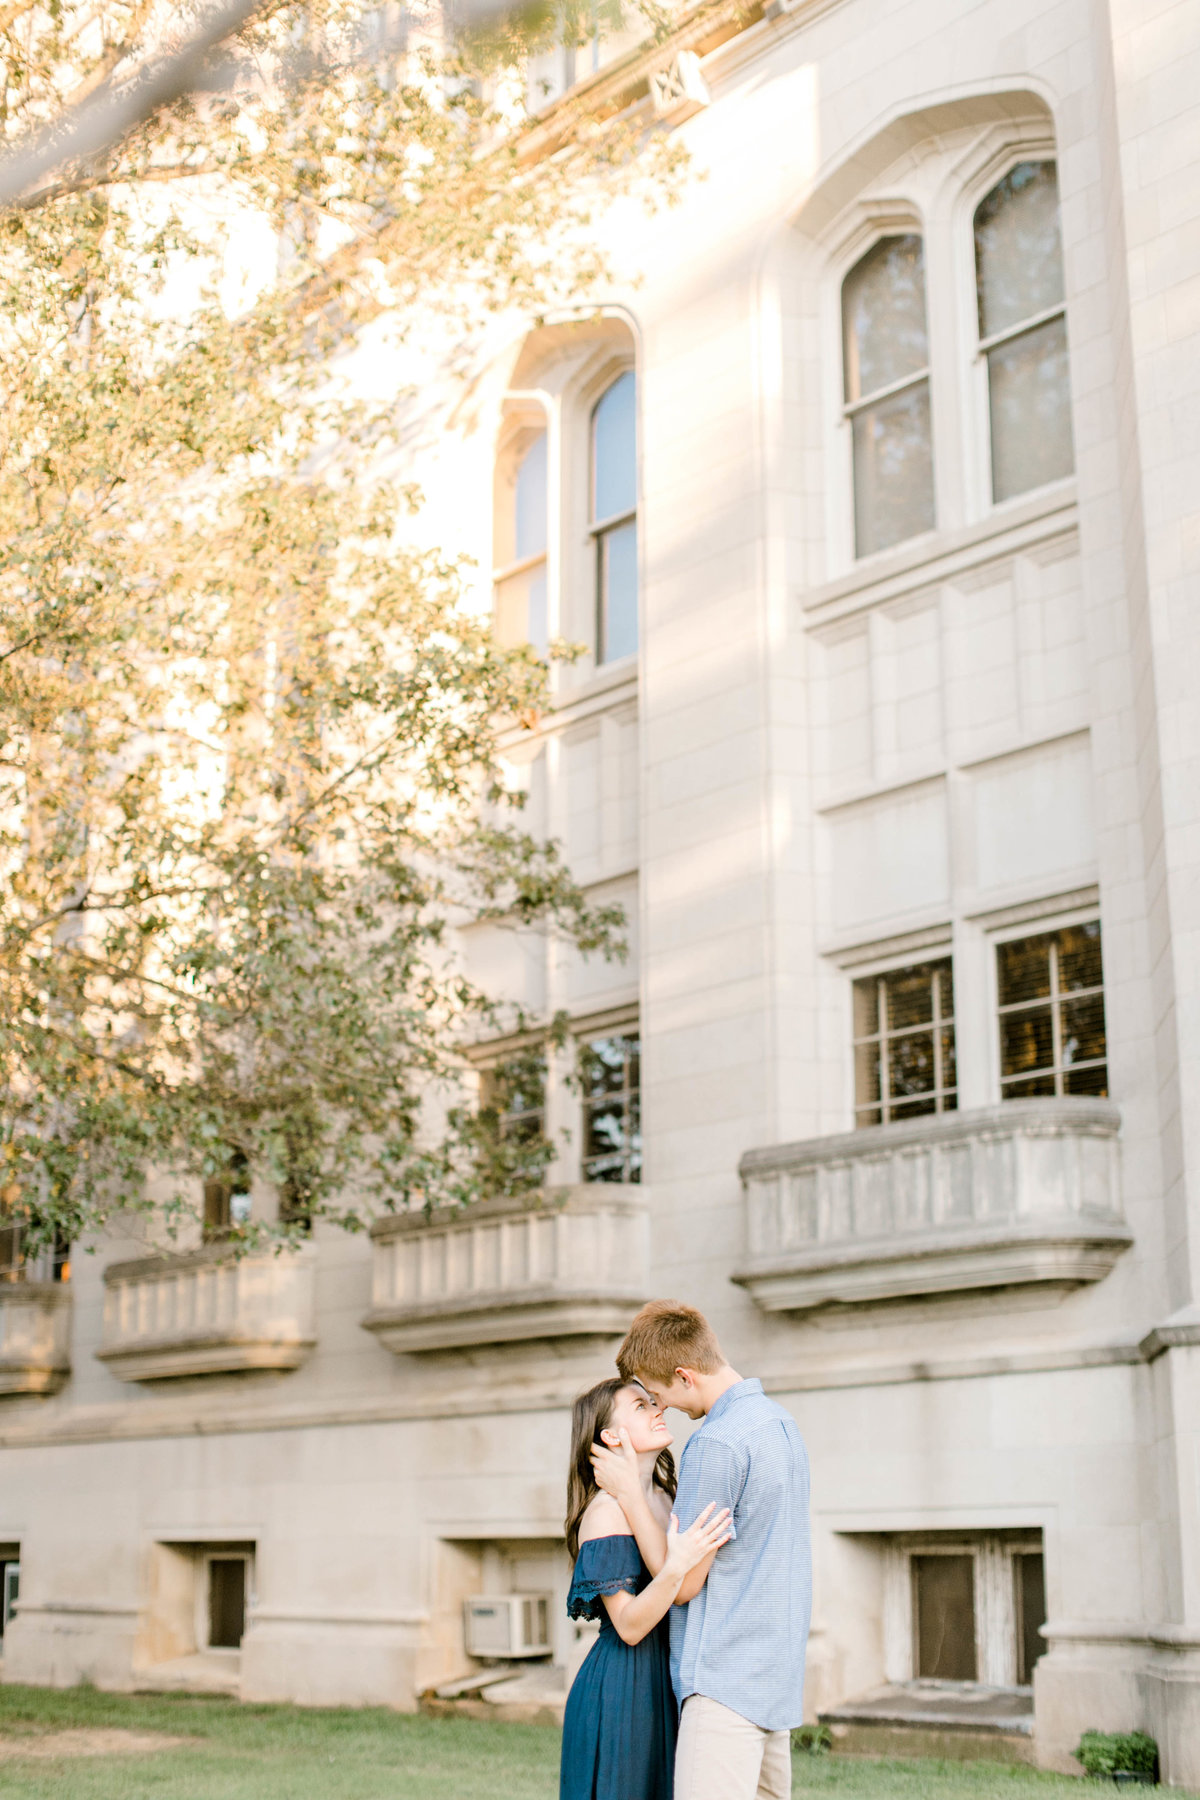 Melanie Foster Photography - Norman Oklahoma Senior and Engagement Photographer - Couple Engagement Photo - 60